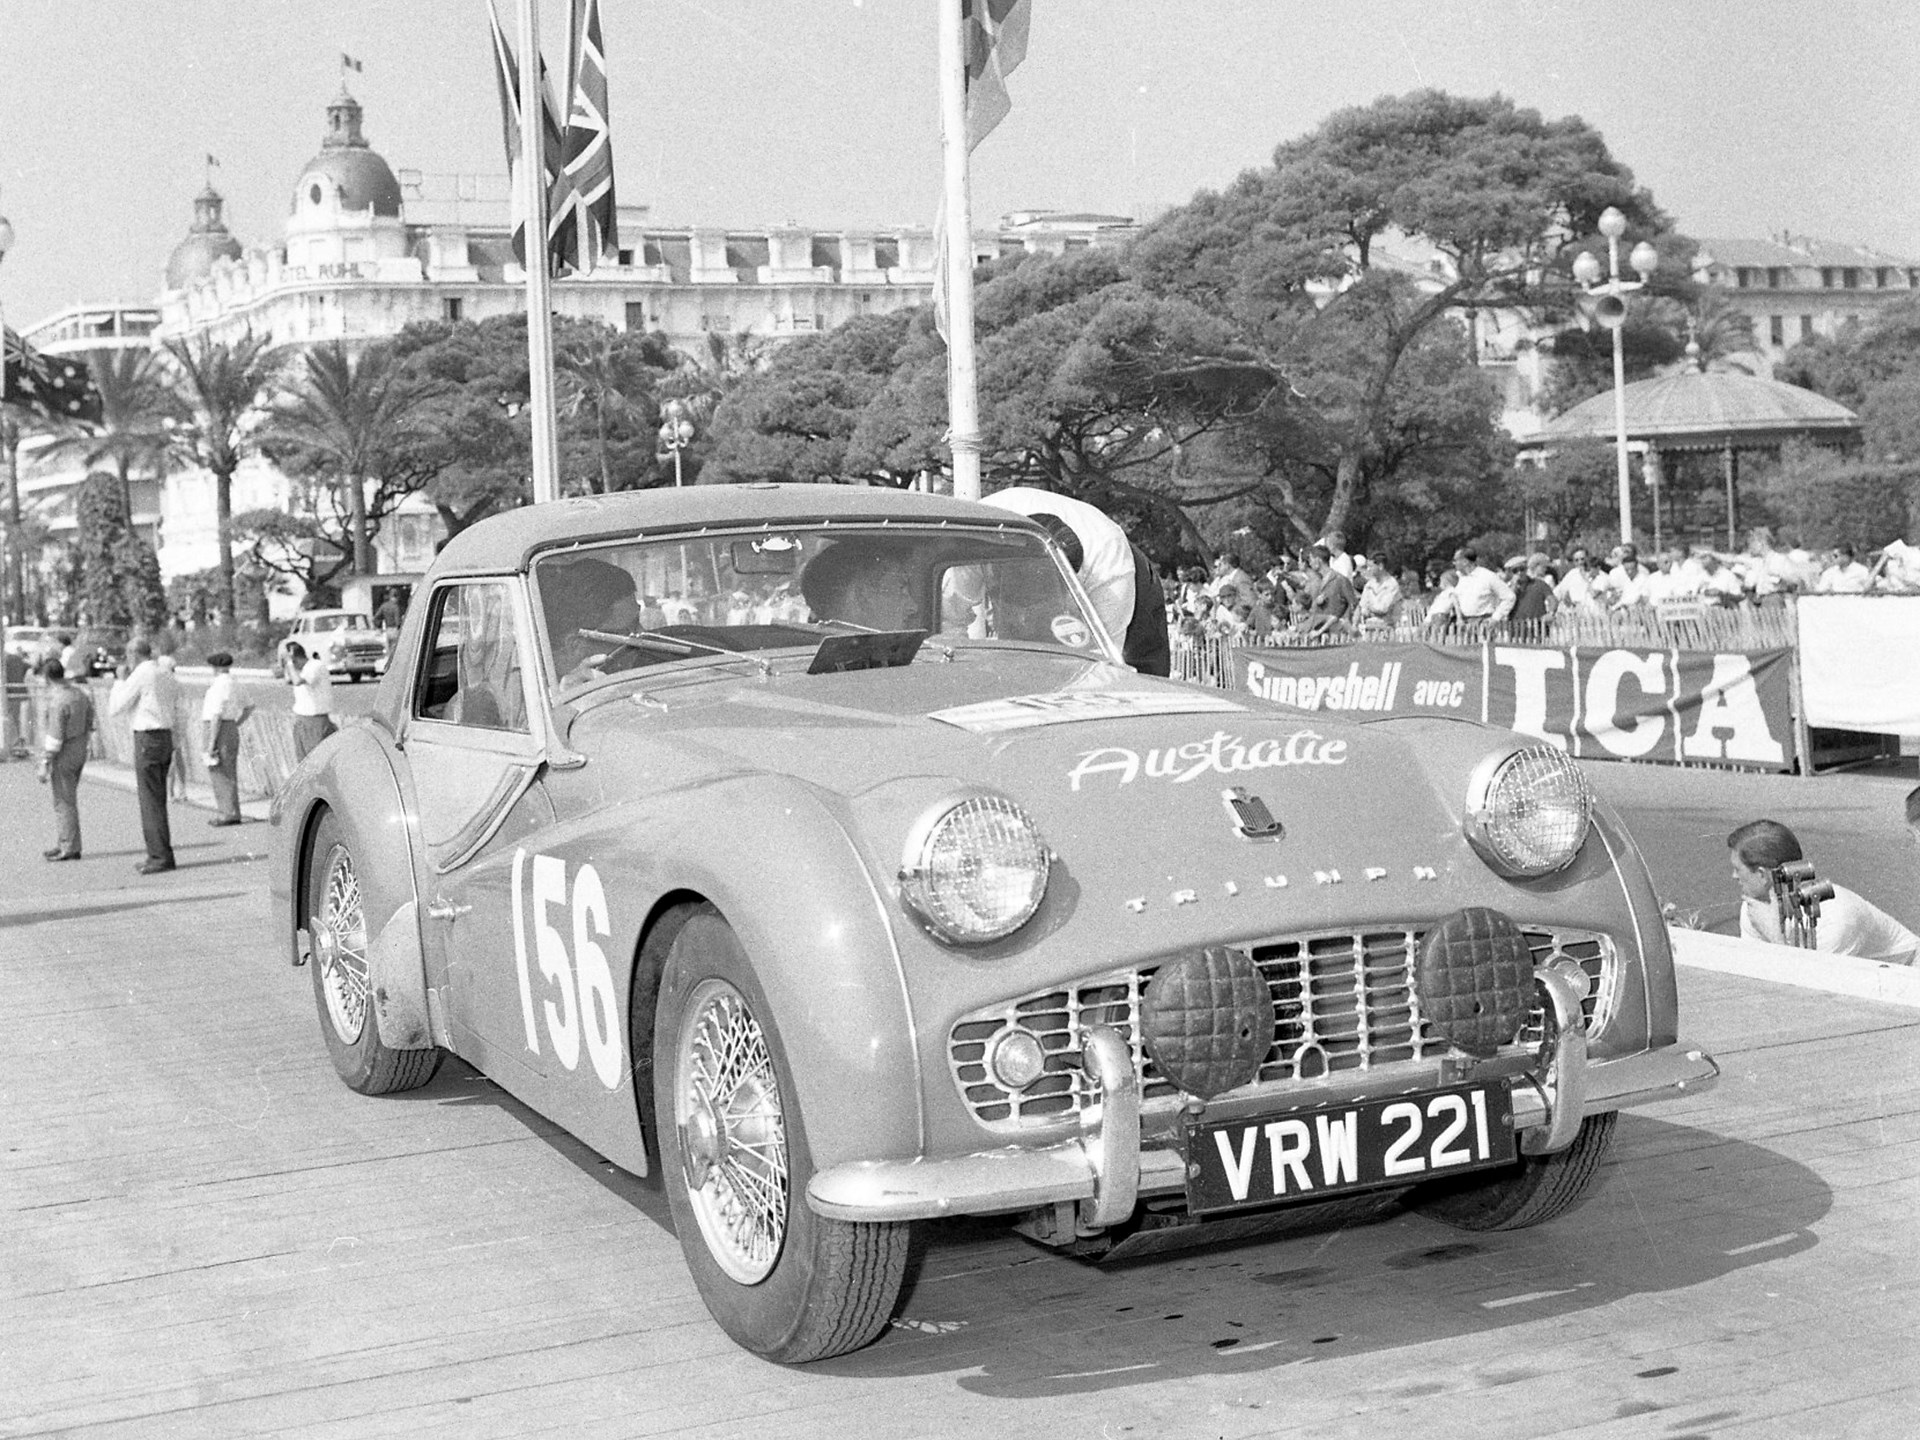 As seen at the start of the 1958 Tour de France in Nice on the Promenade des Anglais.